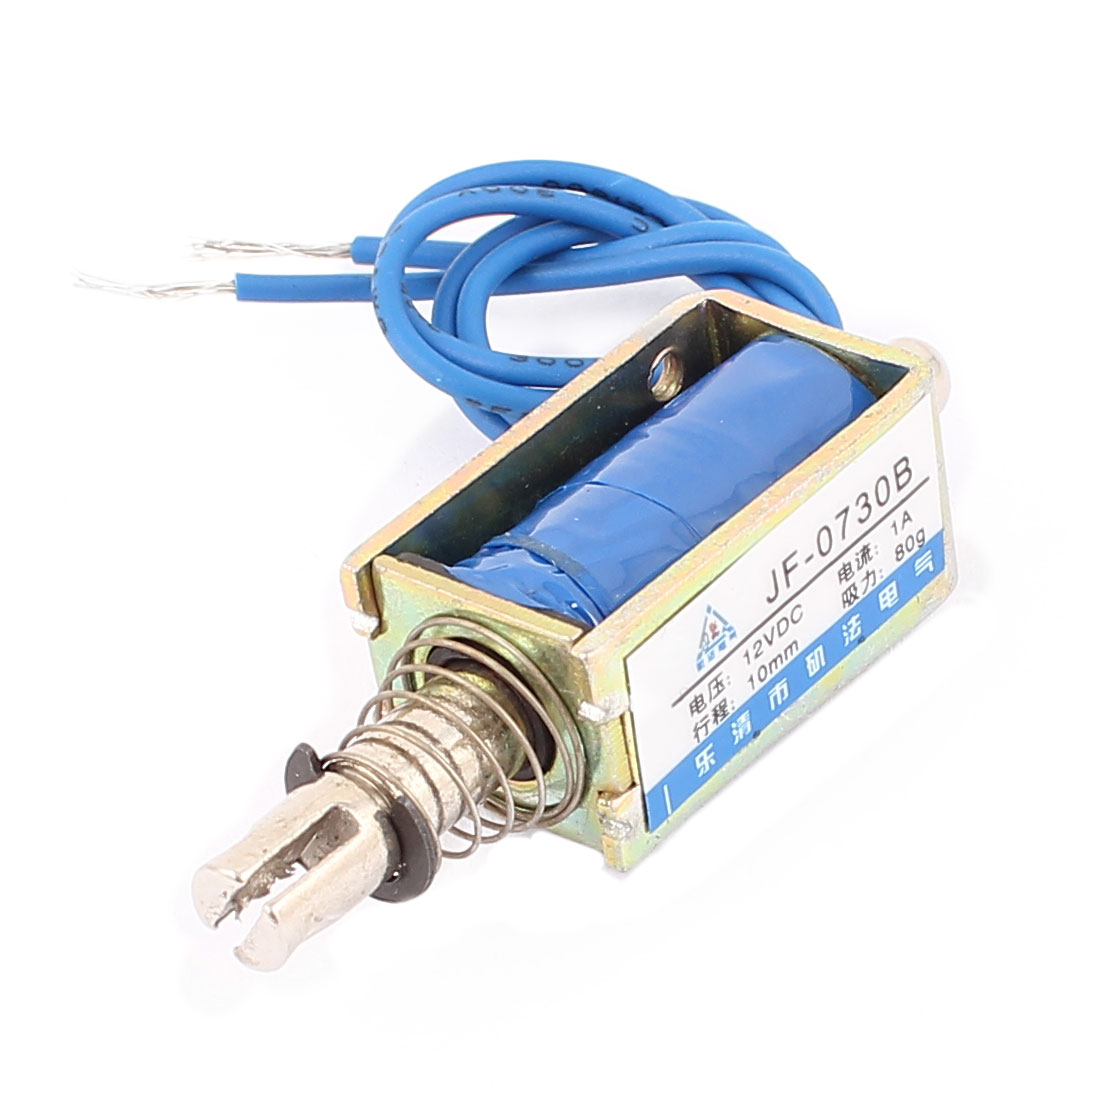 DC12V 1A 10mm 80g Spring Load Push Pull Actuator Electromagnet Solenoid JF-0730B